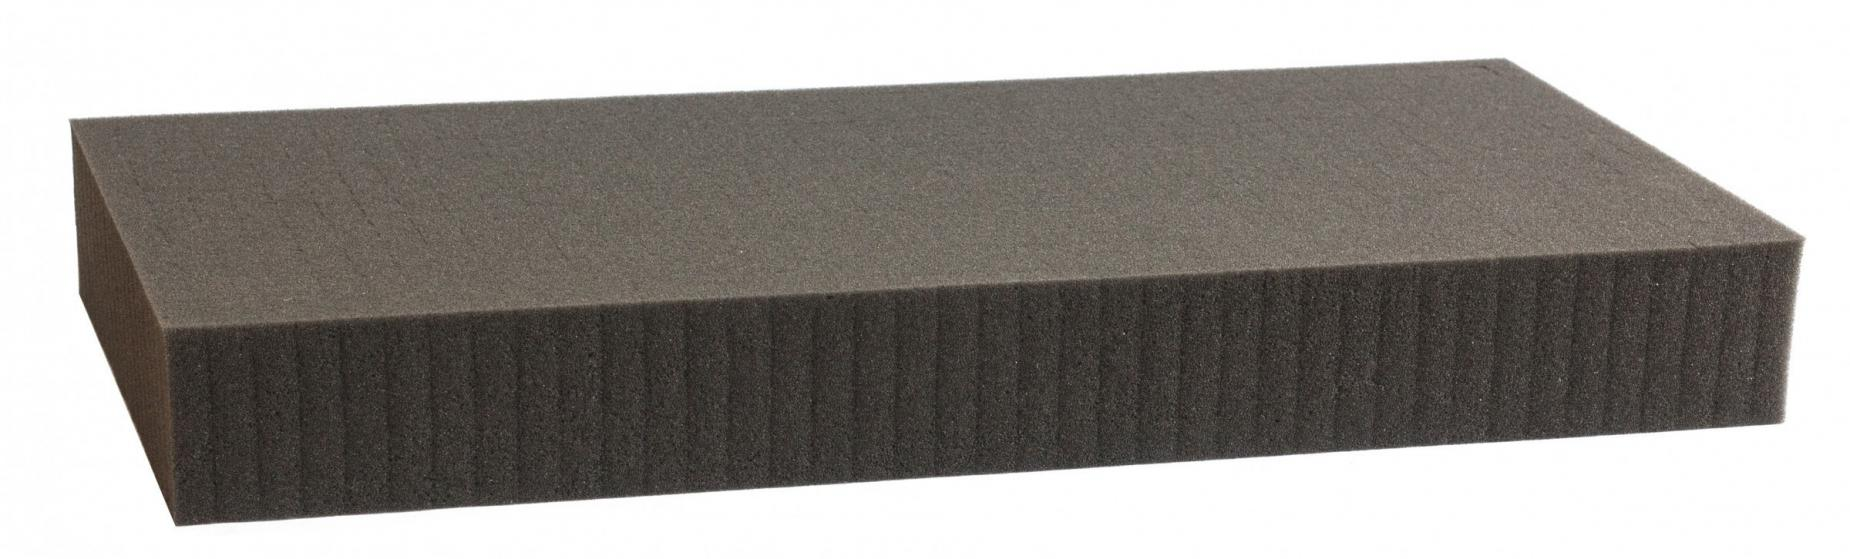 500 mm x 400 mm x 60 mm - Raster 15 mm - Pick and Pluck / Pre-Cubed foam tray